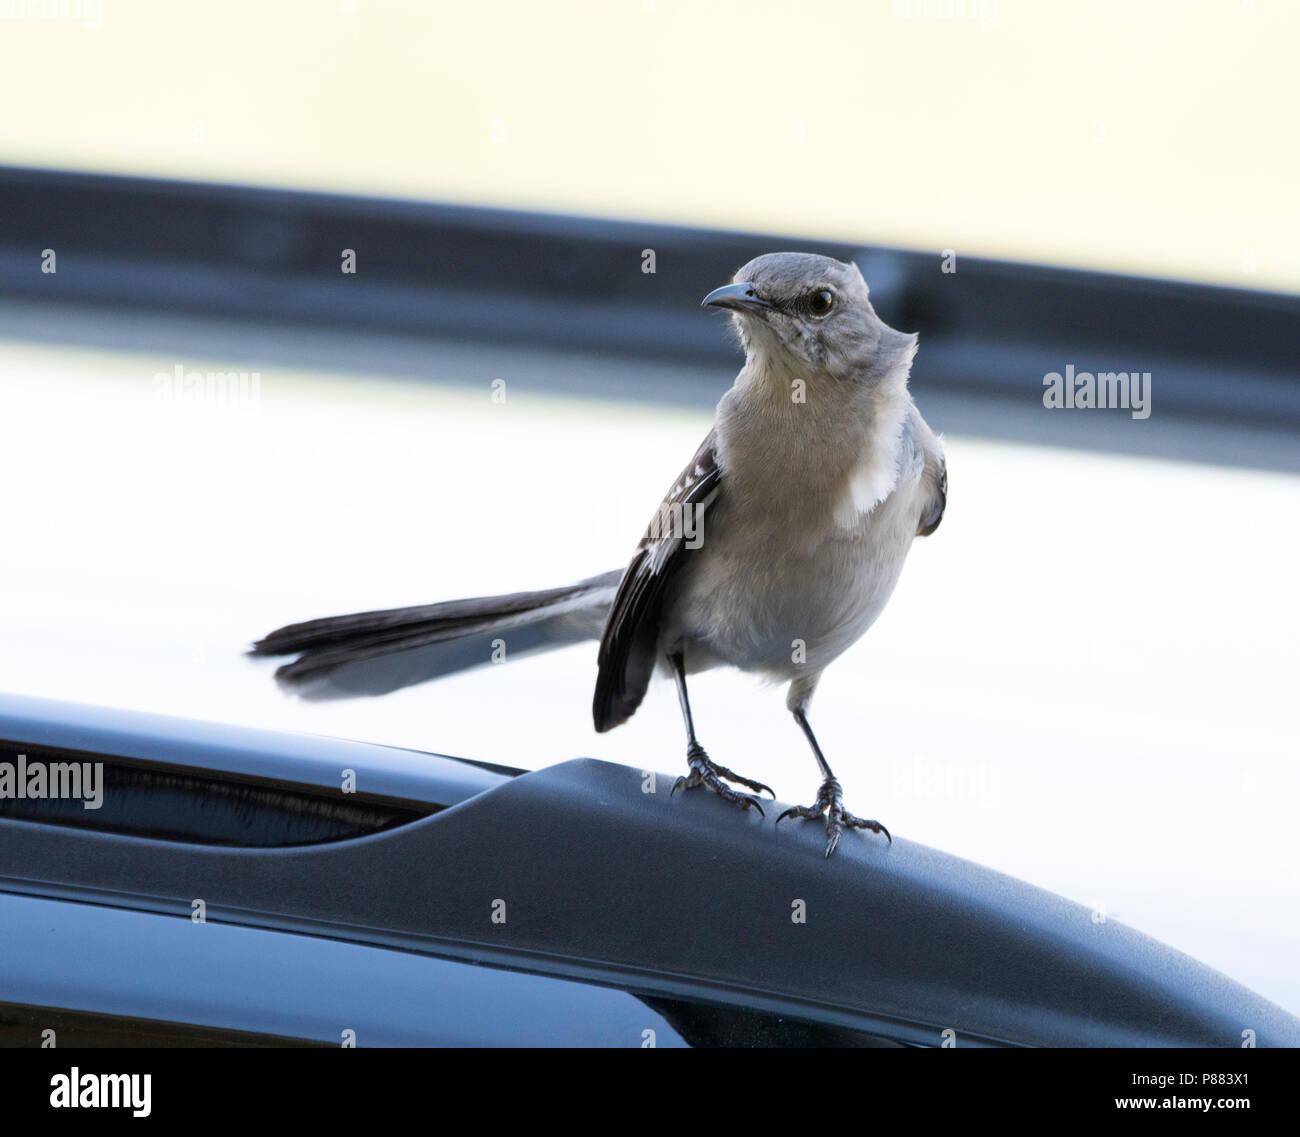 A mockingbird, Mimus polyglottis, looks angry (and is, because of the proximity of a cat, not pictured). - Stock Image